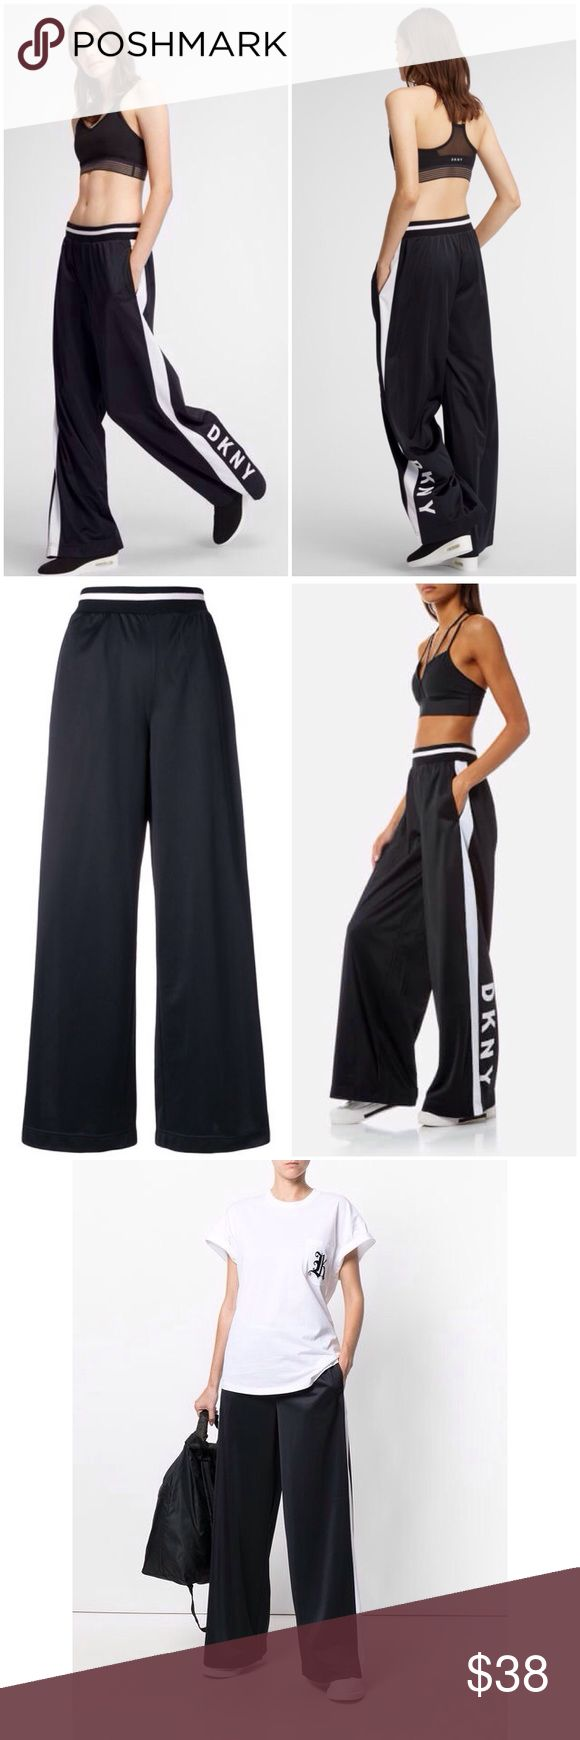 """SALE ✨ DKNY SPORT Flare Leg Track Stripe Logo Pant """"A sleek take on a street-ready classic, these wide leg pants are a volumious choice for the woman of today. Nodding to DKNY's past with the iconic logo detail, the smooth legs of this piece drape downwards in an elegant style, accentuated by the traditional track pant-style stripe motifs.""""  - Elasticated waistband - Side pockets - Wide leg - Flocked iconic logo to the side - 100% Polyester Dkny Pants Track Pants & Joggers"""